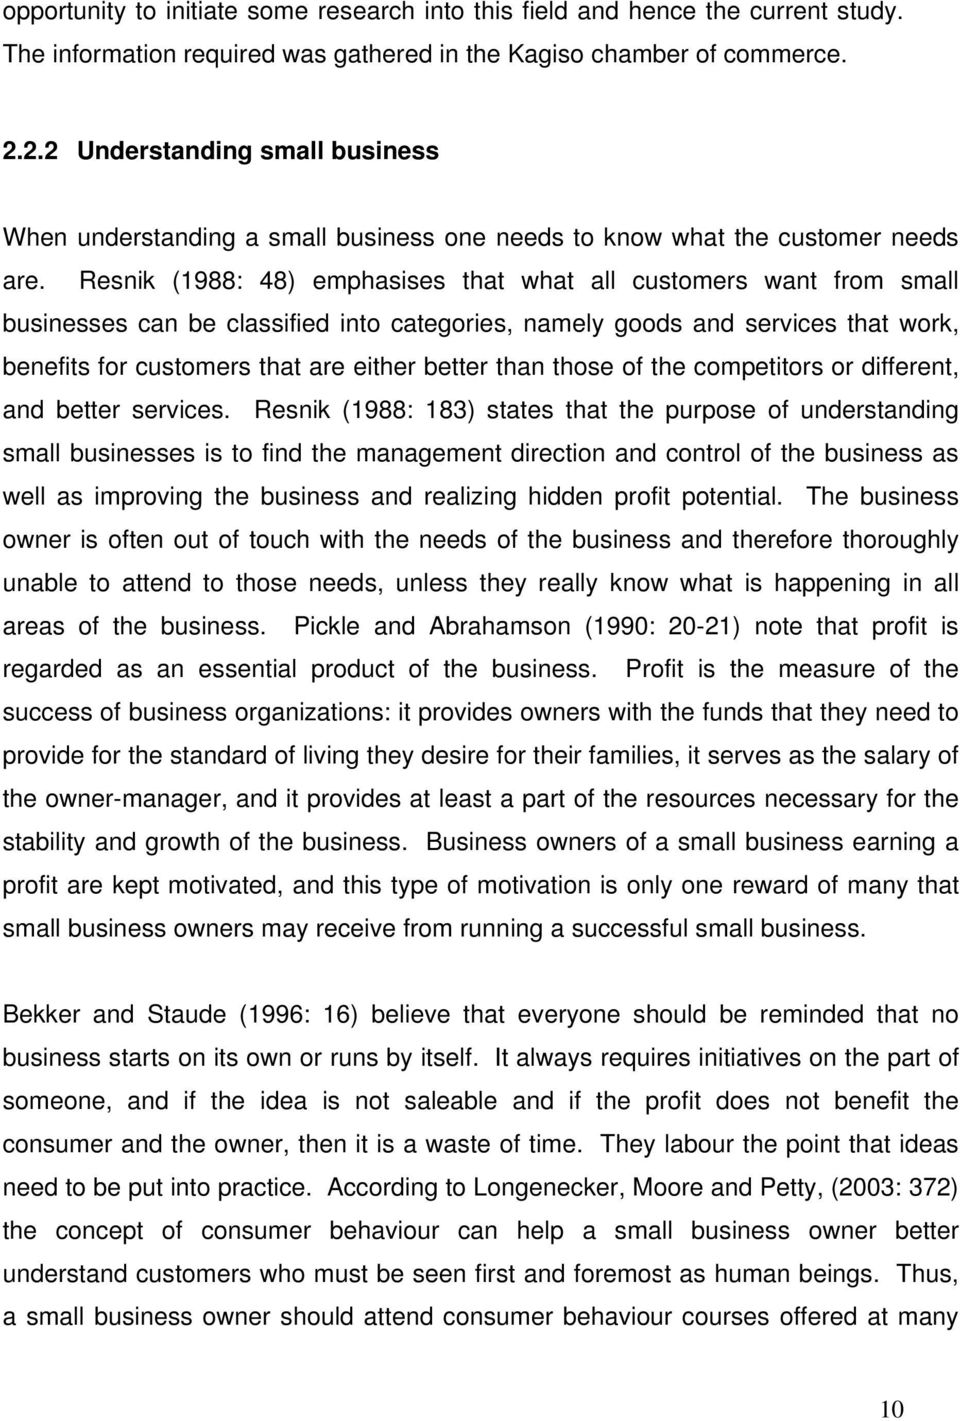 Resnik (1988: 48) emphasises that what all customers want from small businesses can be classified into categories, namely goods and services that work, benefits for customers that are either better